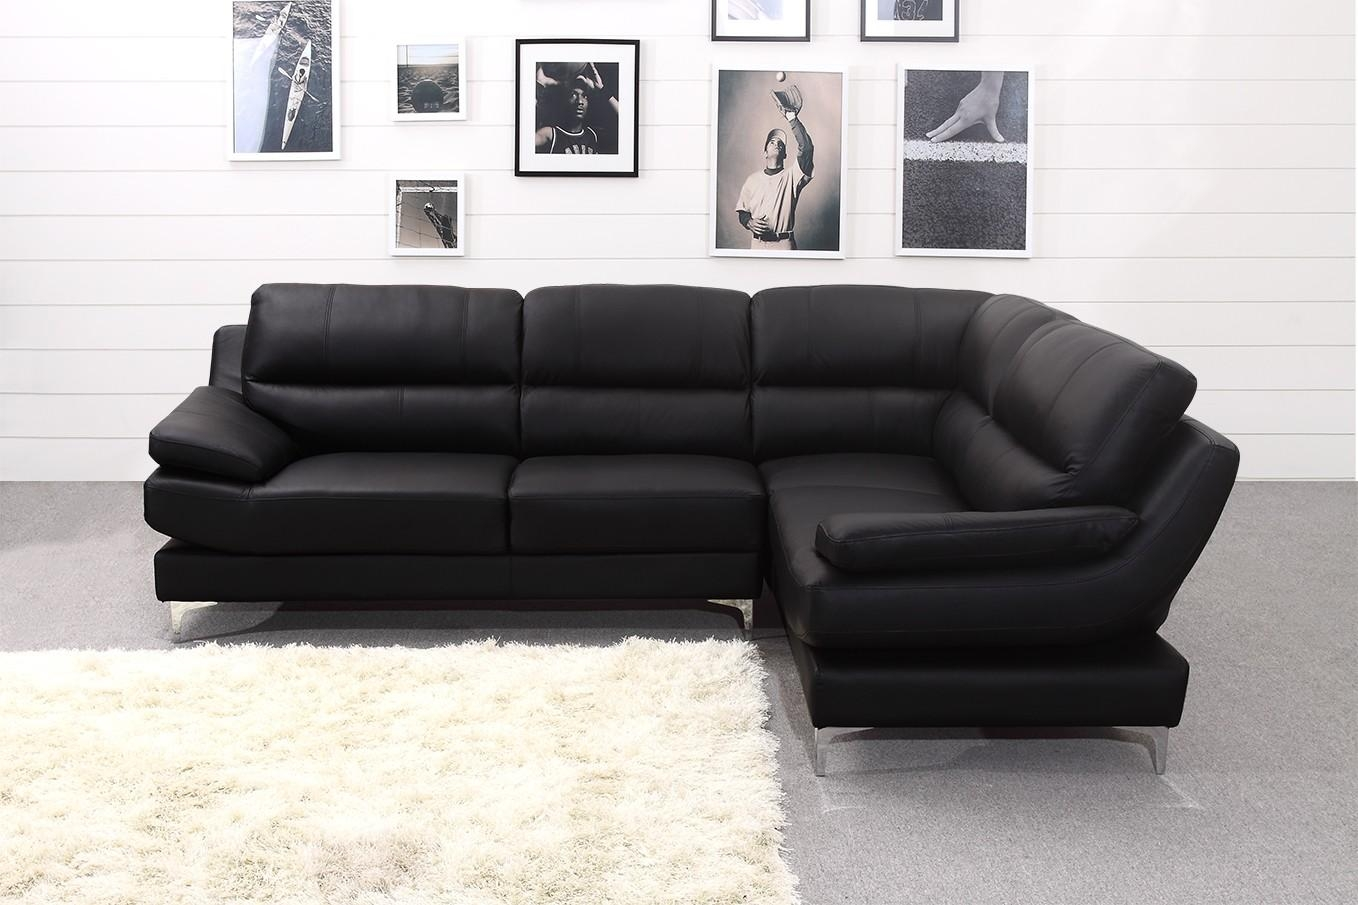 Black Corner Sofa And Leather Corner Sofa Black White Montana With Large Black Leather Corner Sofas (Image 1 of 22)